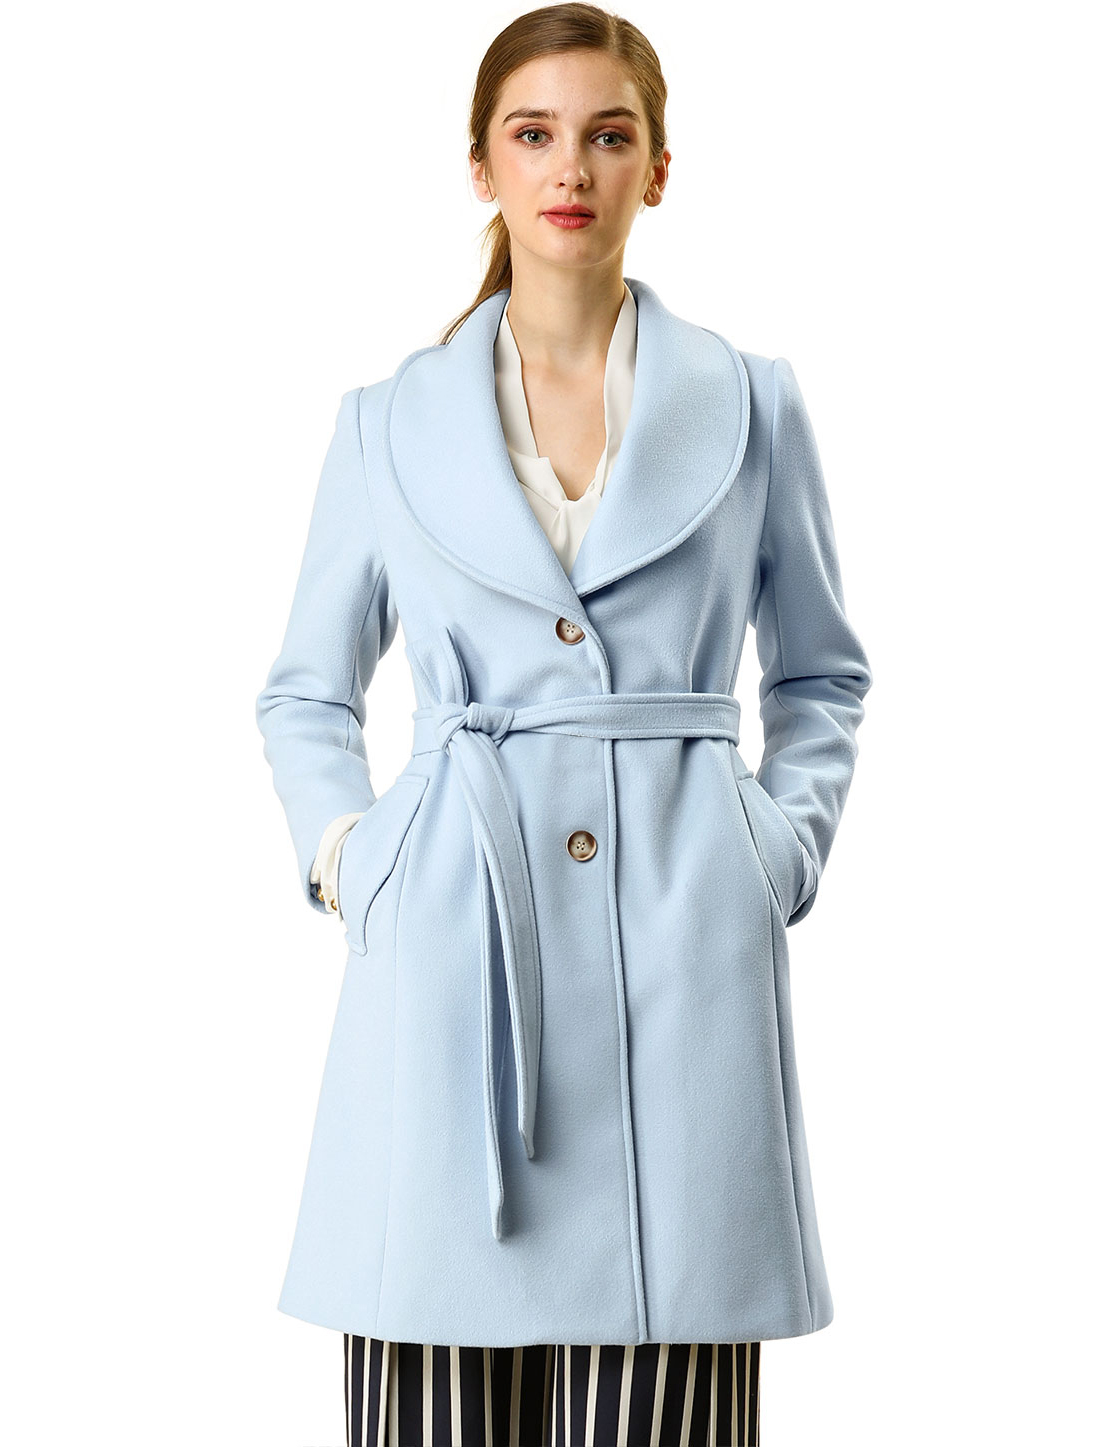 Allegra K Women's Casual Cute Slim Single Breasted Belt Coat Blue S (US 6)